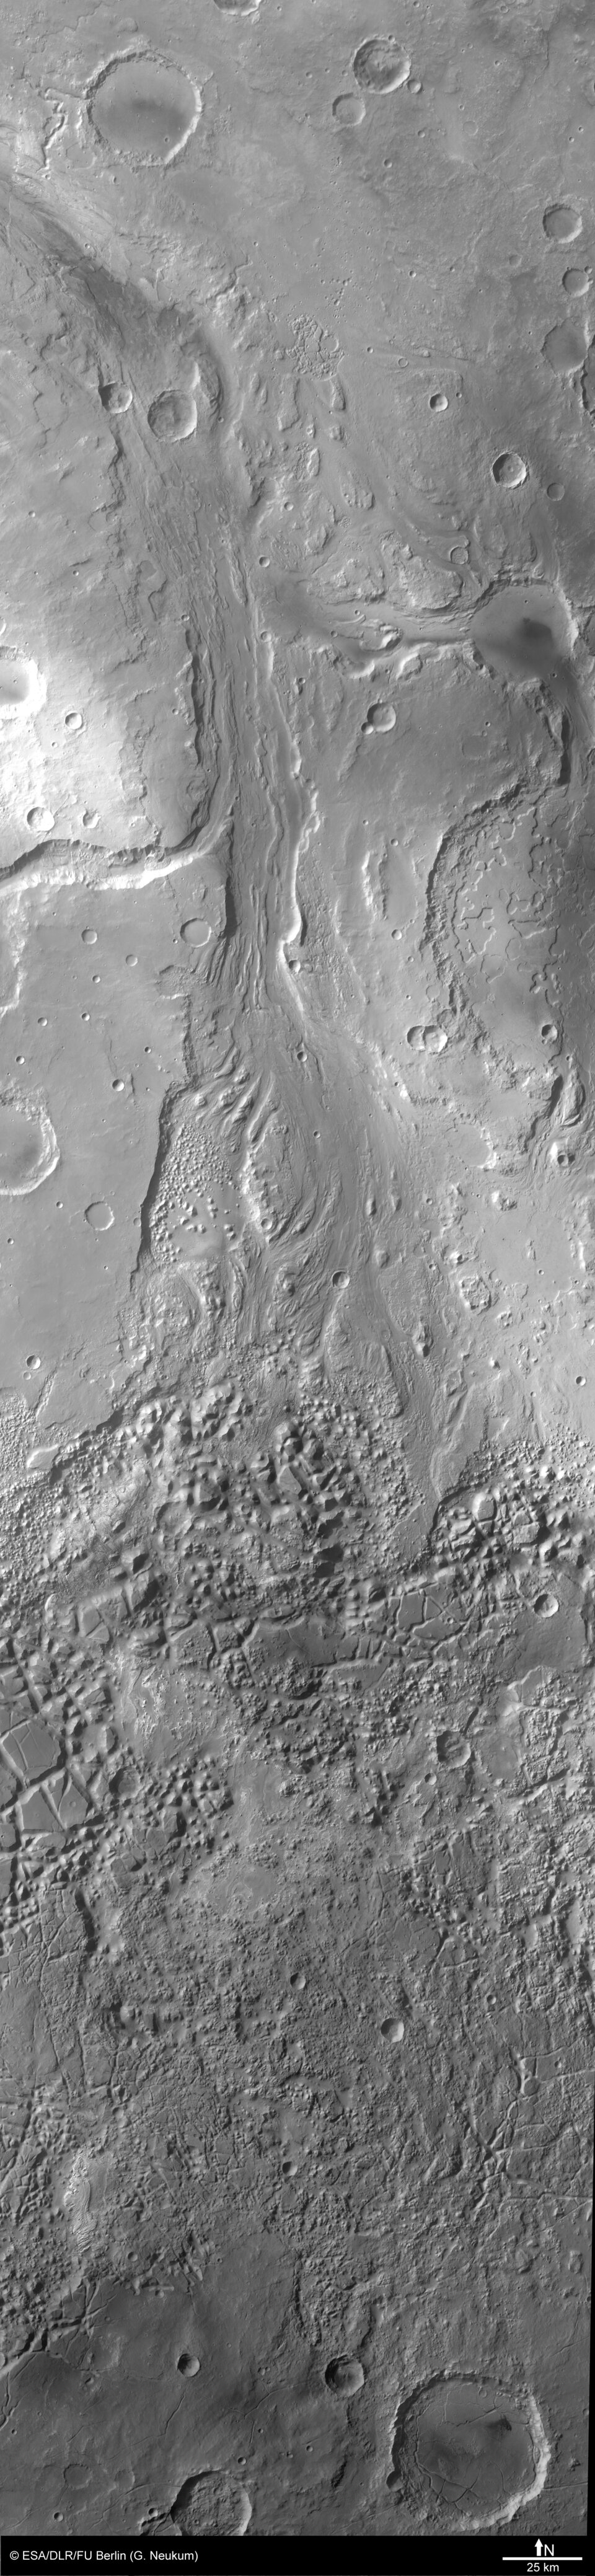 Black and white pan across the region